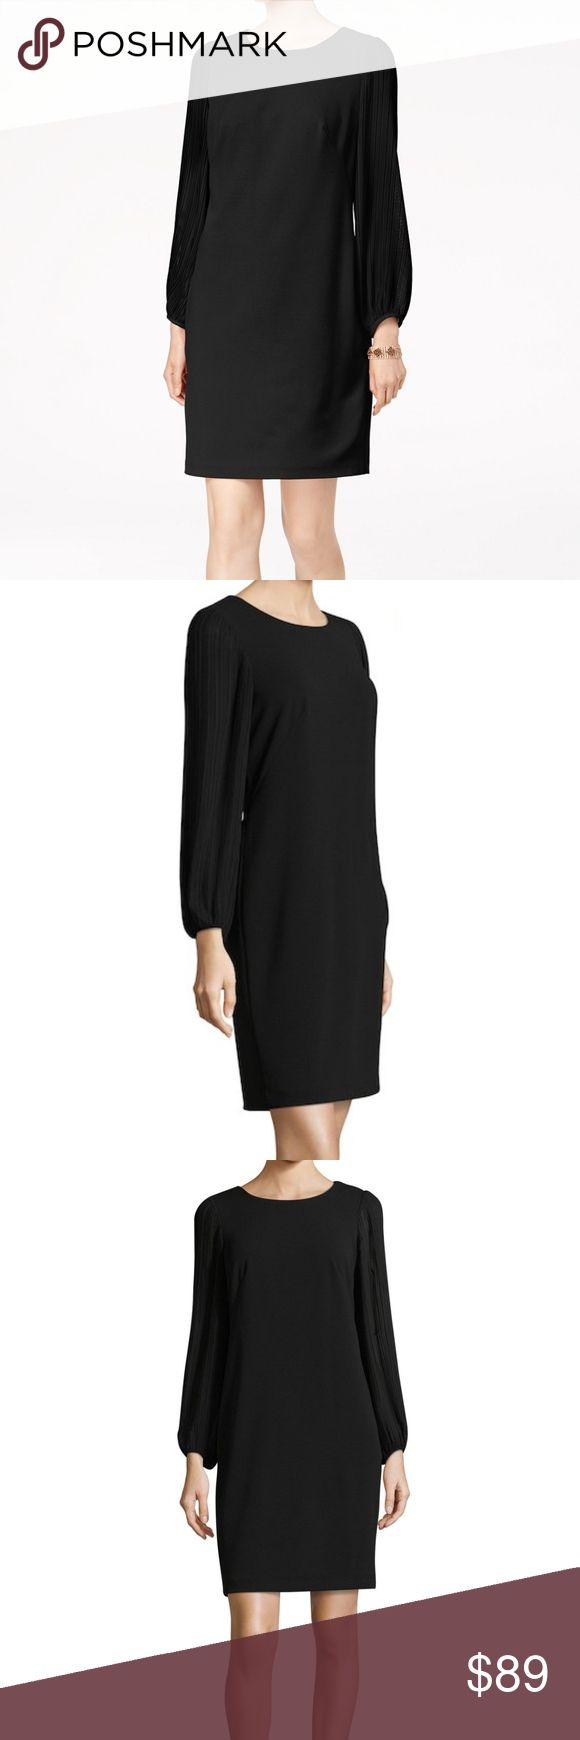 "Donna Ricco Pleated Long Sleeve Shift LBD Cocktail MSRP: $178  Size: 6 Color: Black  Shift silhouette keeps the look classic and suitable for day or night * Crewneck * Micro-pleated blouson sleeve * Even hem * Tonal topstitching and panel seaming * Back zipper closure  NWT; no flaws Body: 95% poly 5% Spandex Combo/lining: 100% poly Hand wash  Measures flat approx: Length 38"" Chest 18.5"" Waist 17.5"" Hips 19.5""  Offers warmly accepted - If we can't reach your offer, we'll send you the lowest…"